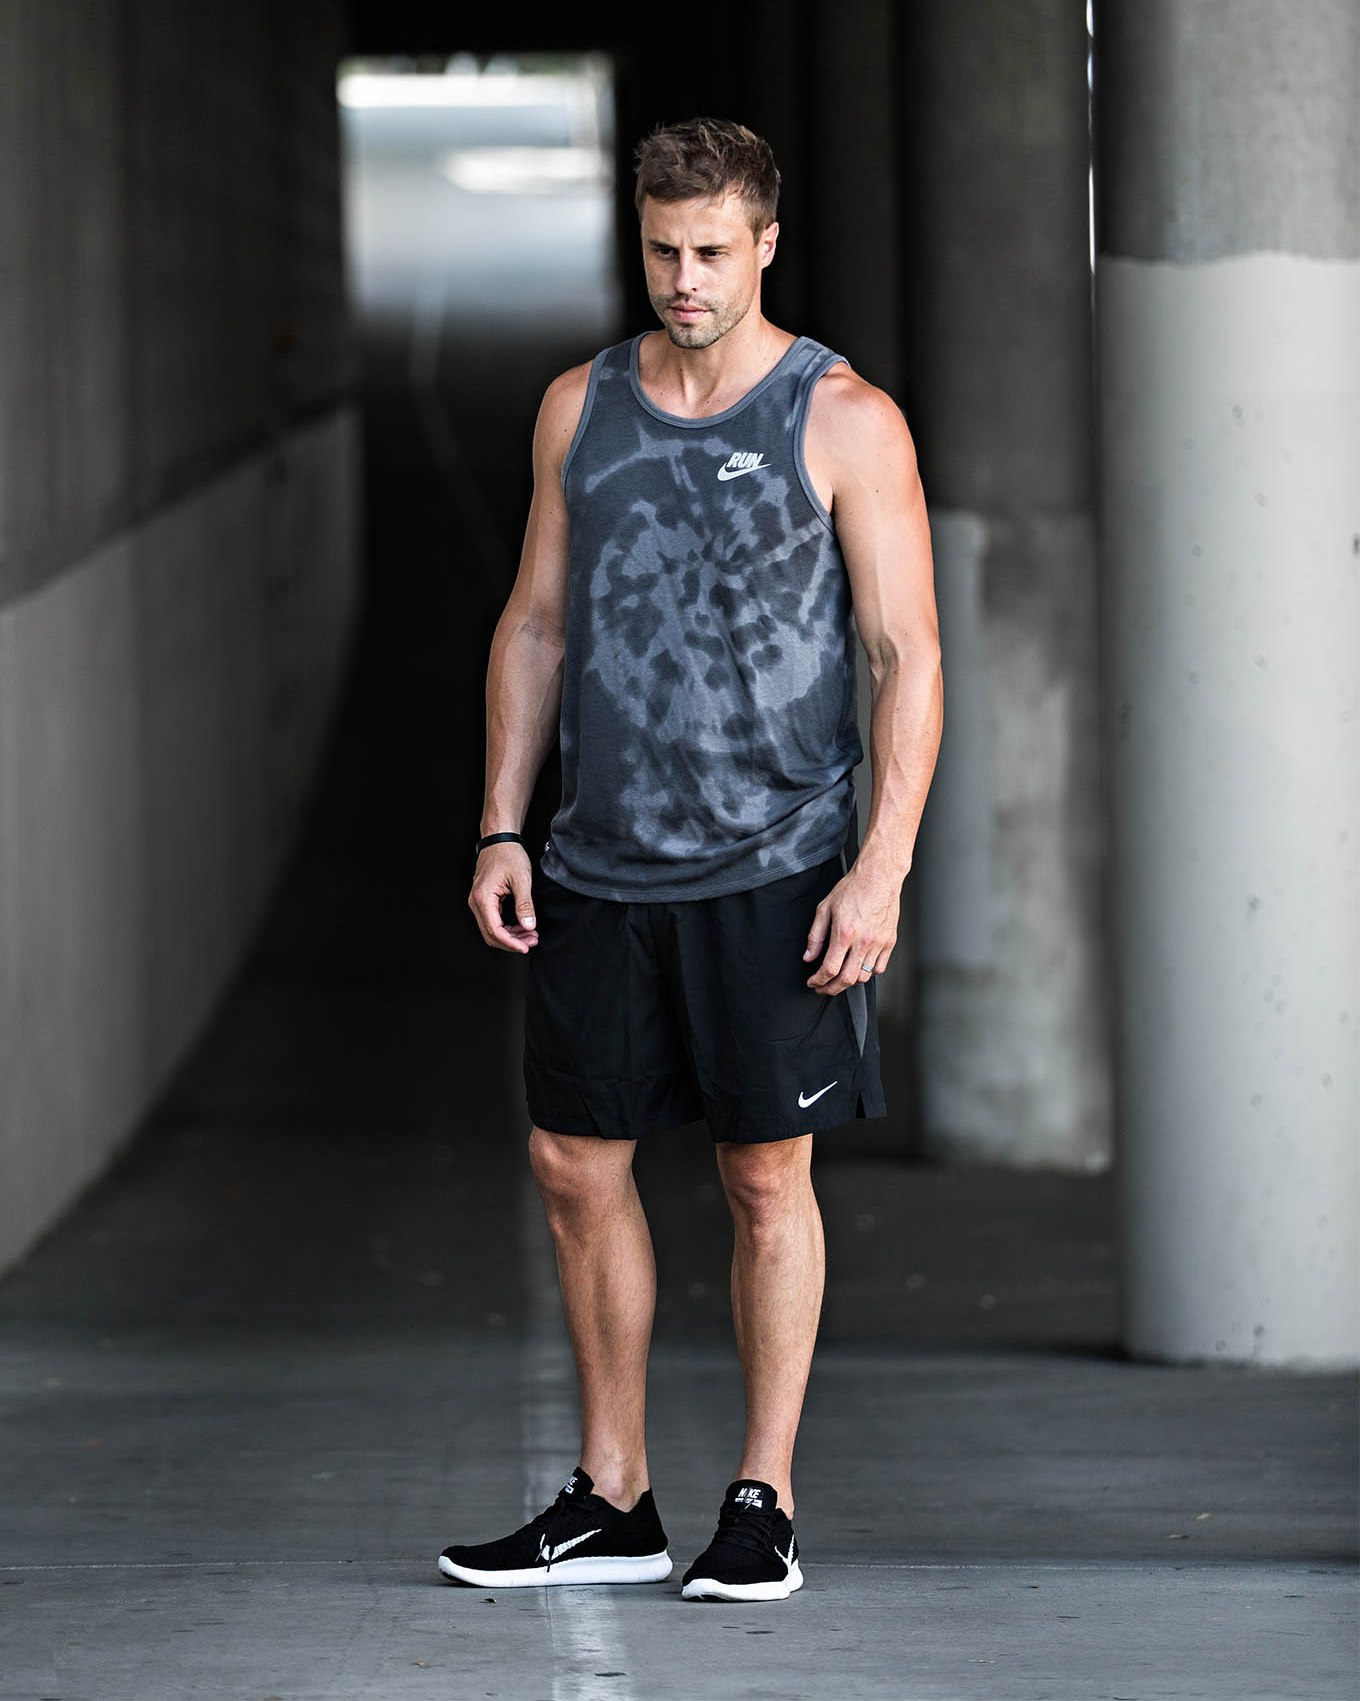 a loose grey top, black shorts and black trainers for a simple and very comfortable look